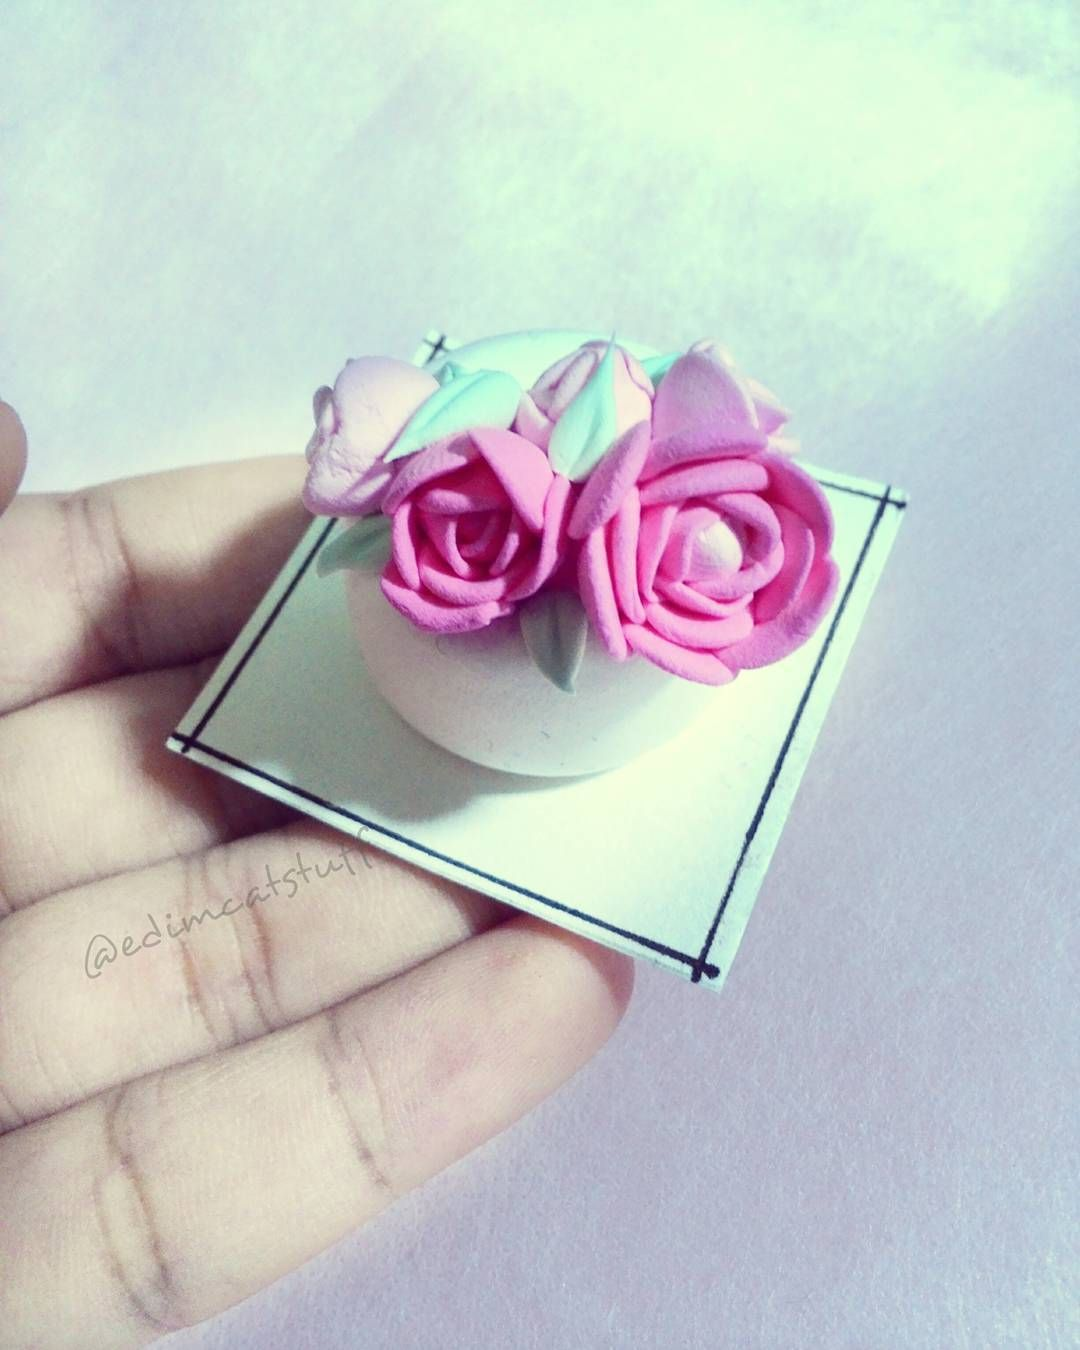 More pics of it tomorrow  . . . . #flowercakes #flowercake #cake #clay #miniature #food #cute #handmade #inspiration #diy #followme #likesforlikes #like4like by edimcatstuff